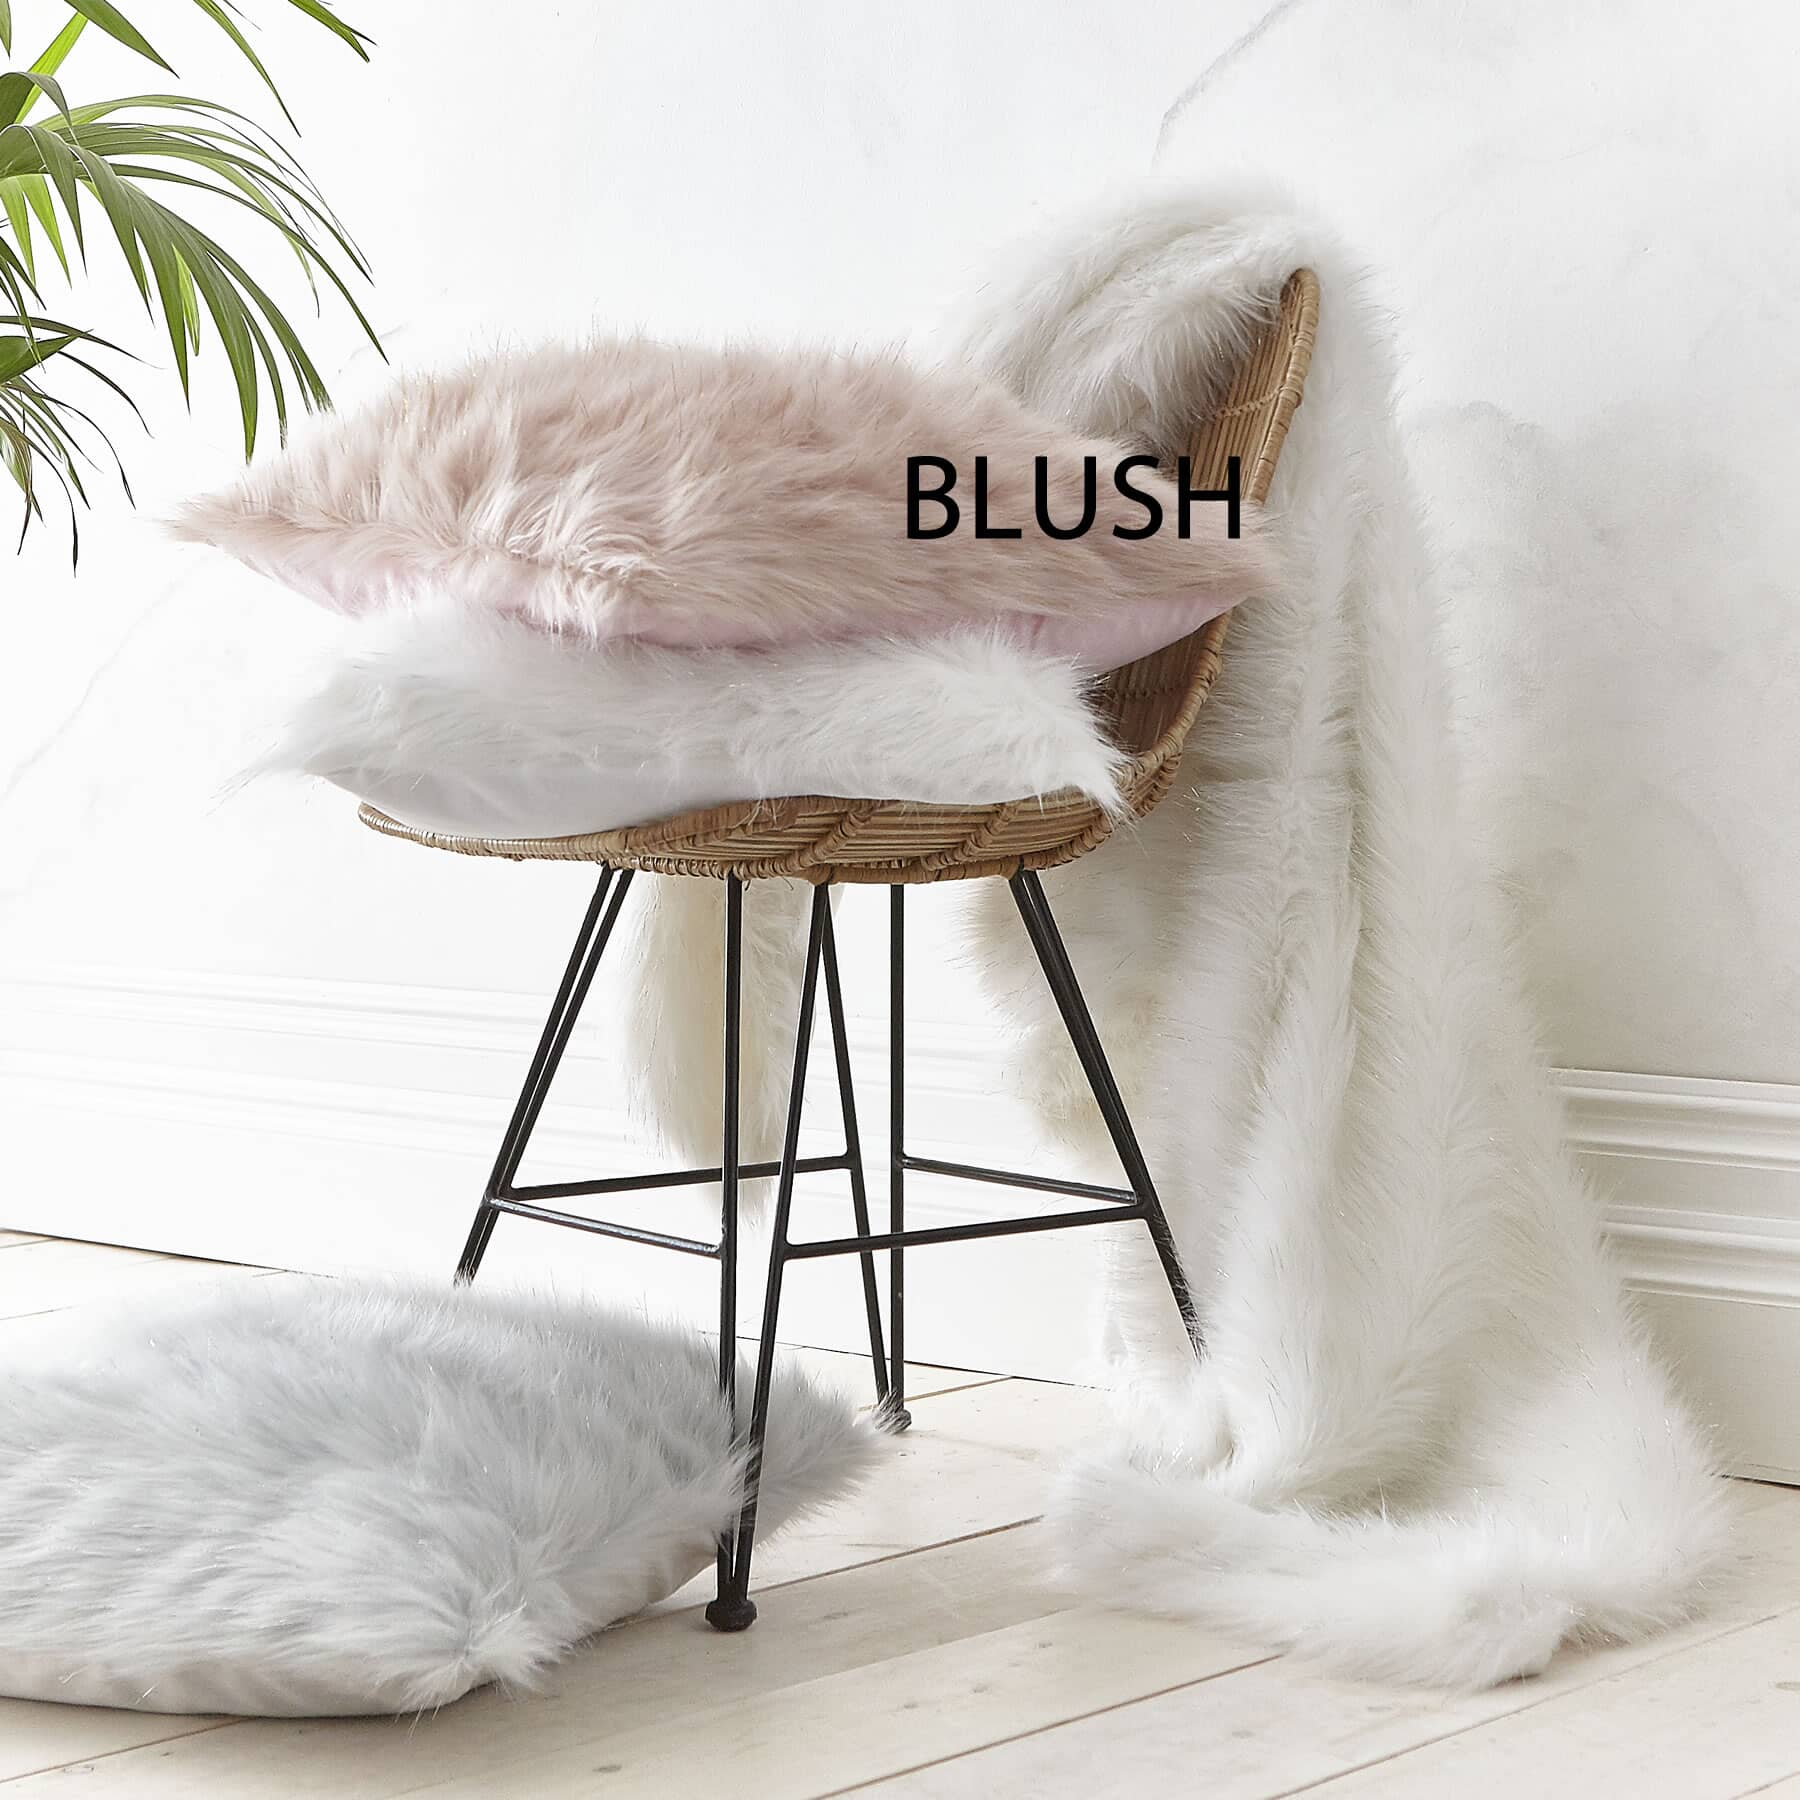 Metallic Fur Blush